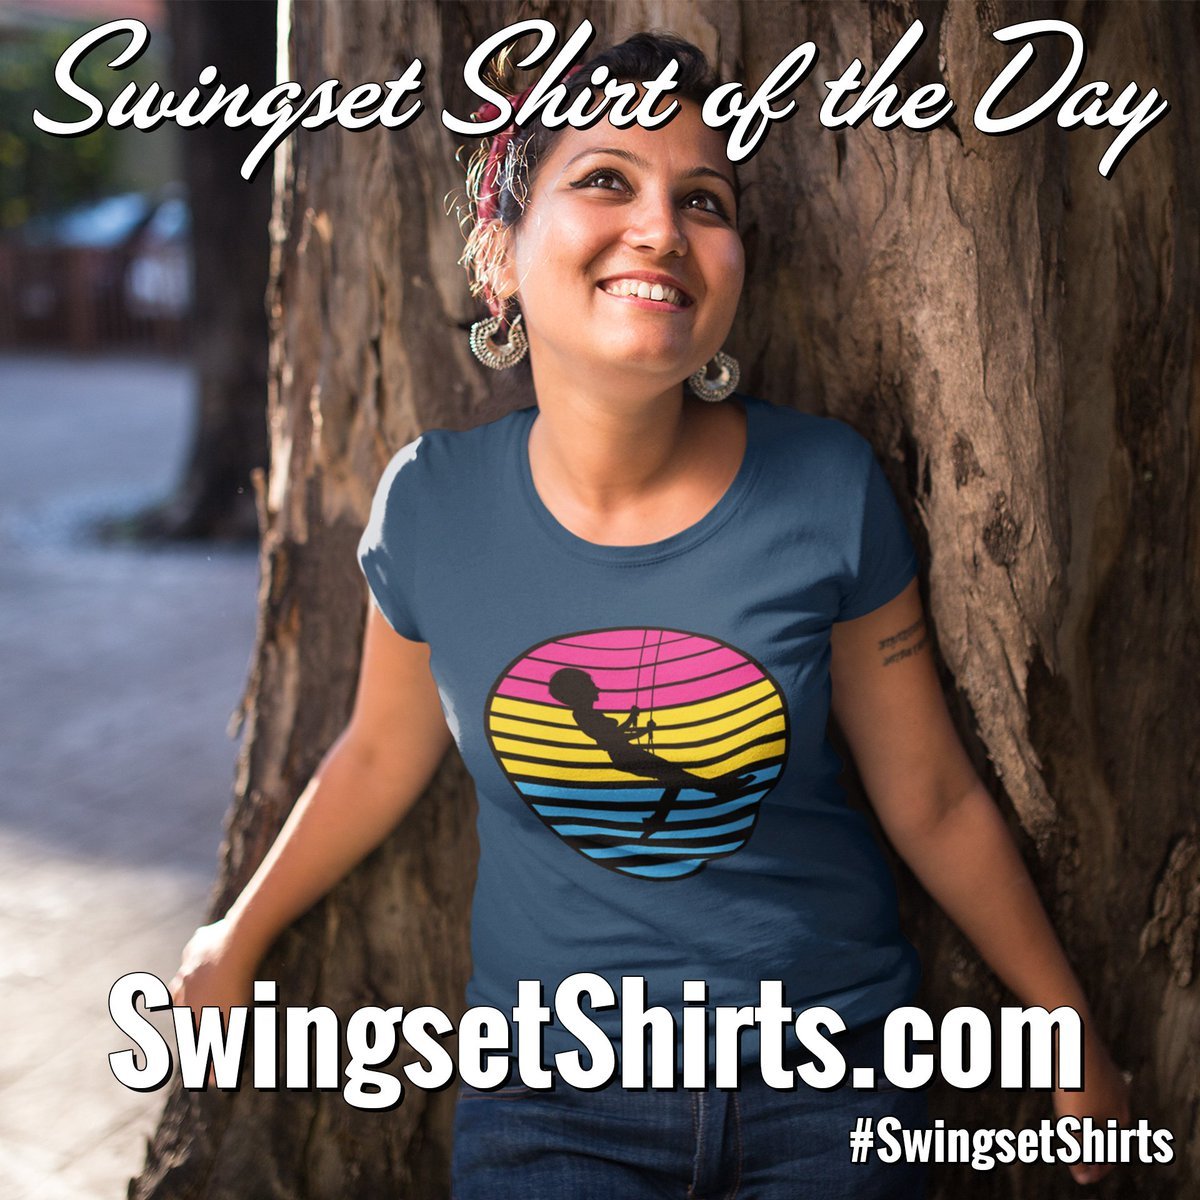 #SSPride - Pansexual Flag - V3 is today's Swingset...